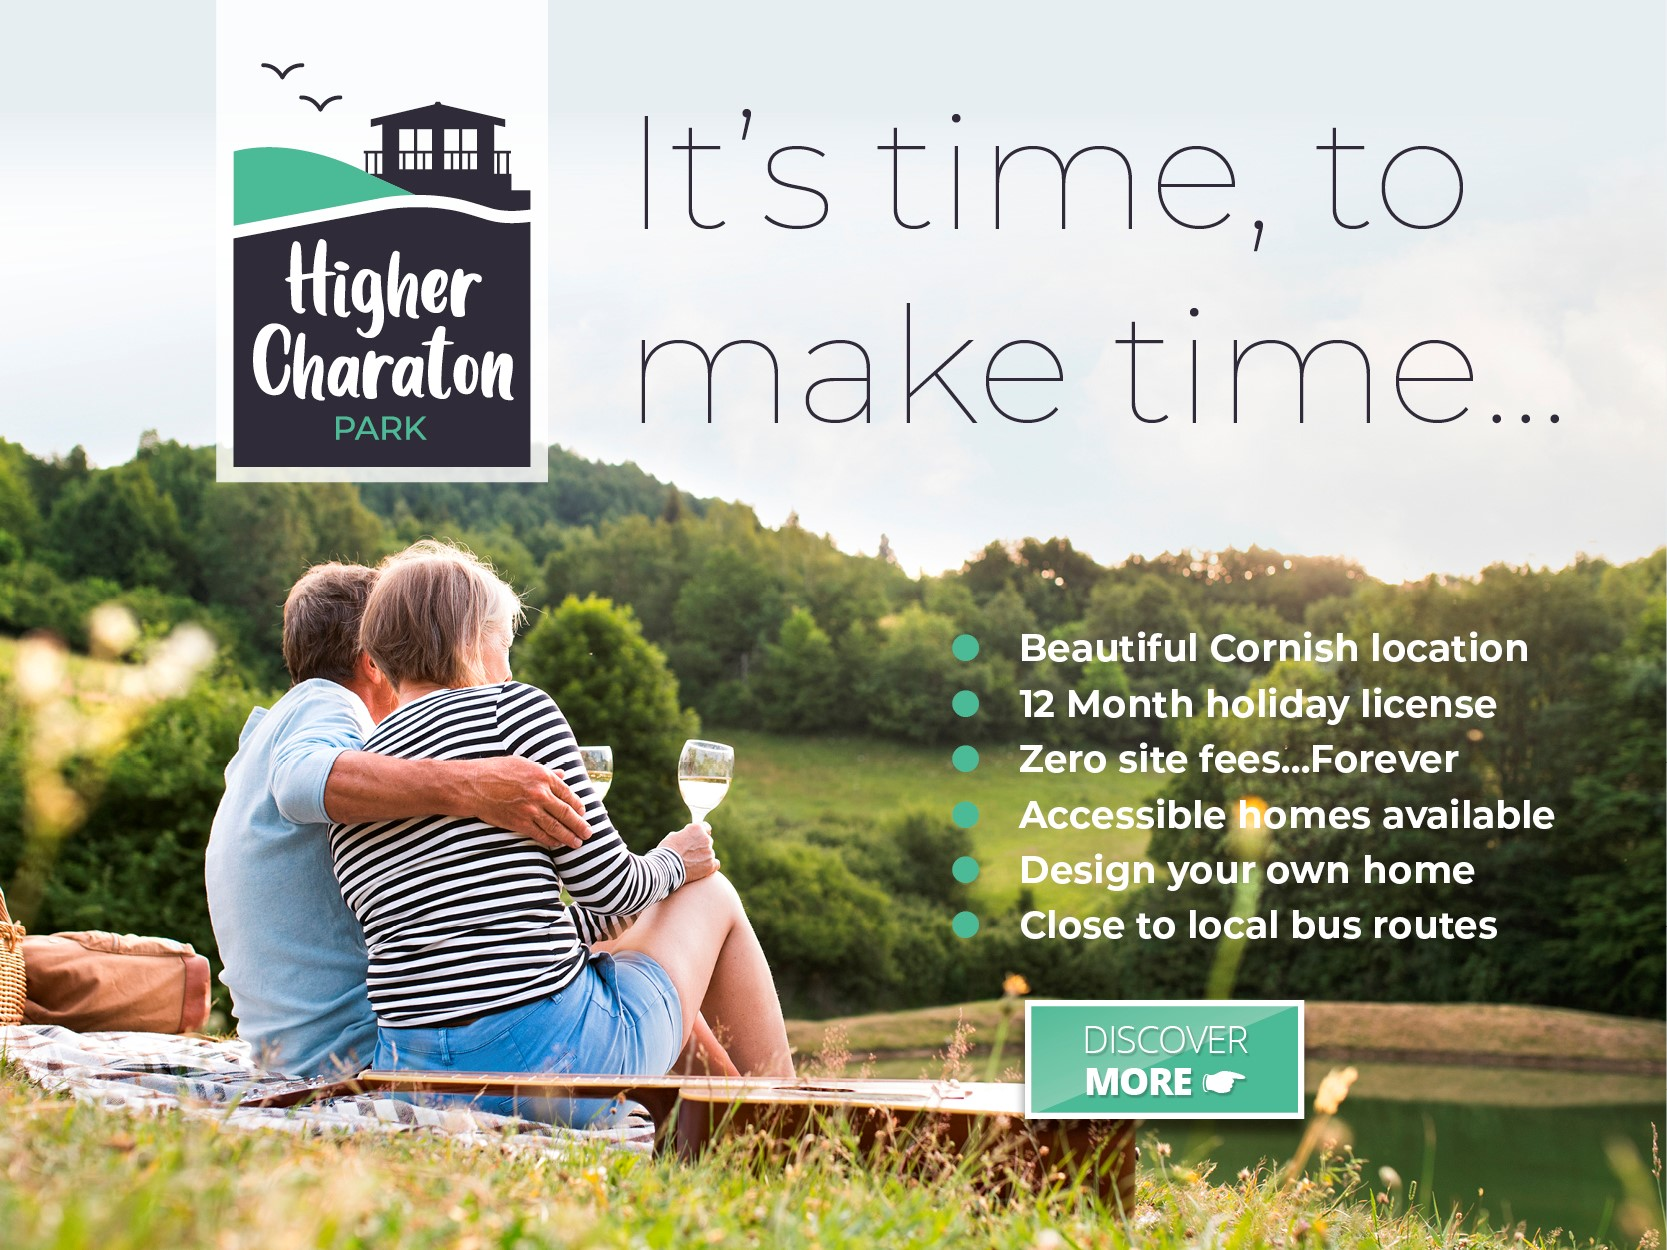 Higher Charaton web popup